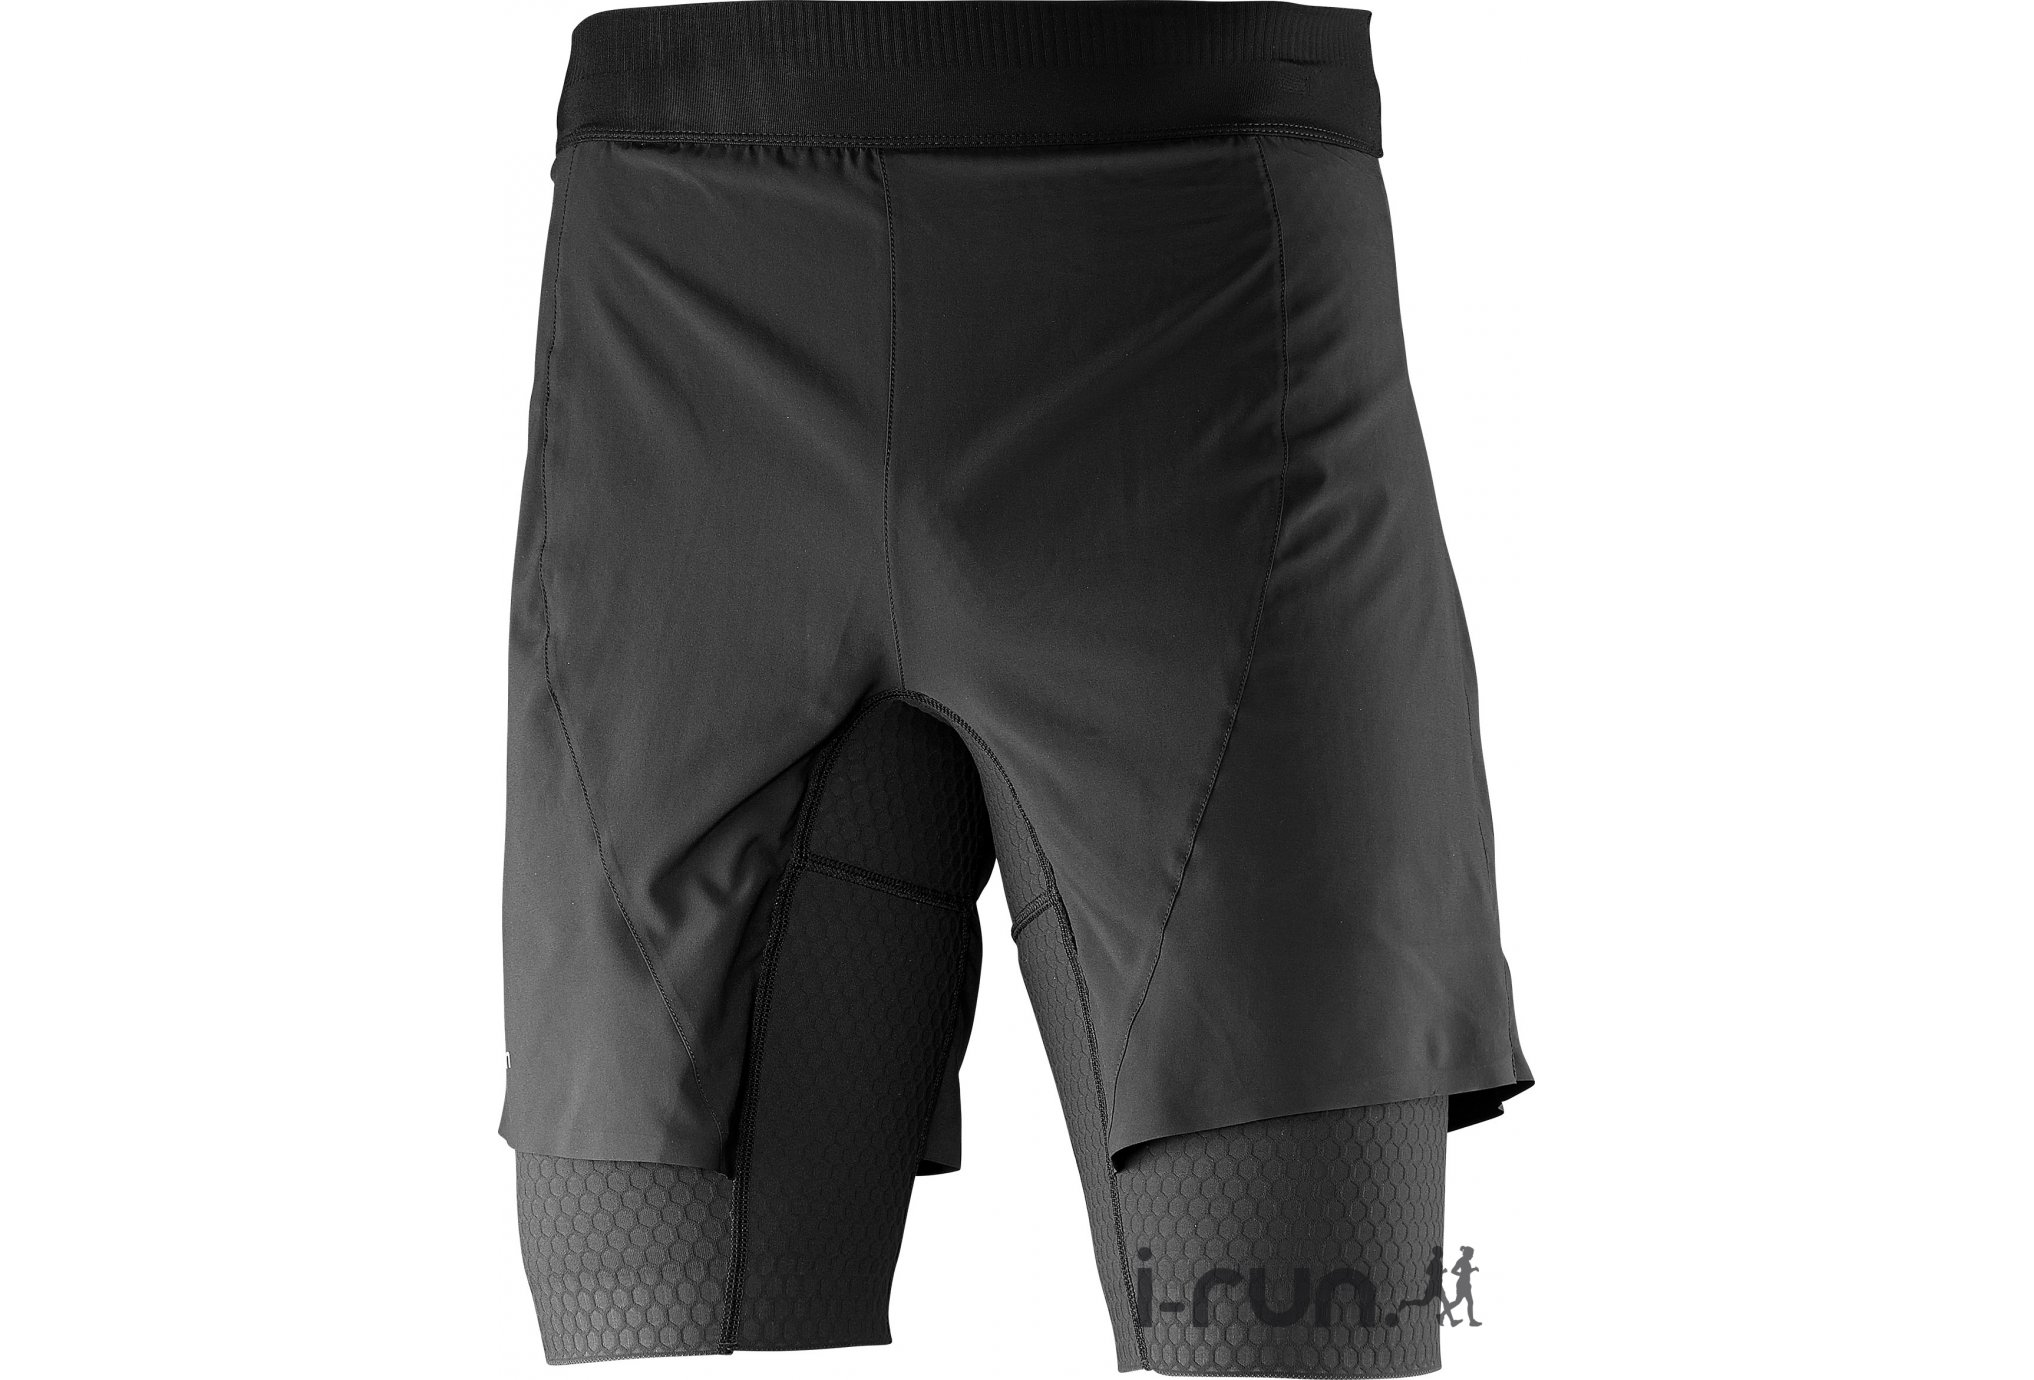 Salomon Short Exo Pro Twinskin M vêtement running homme